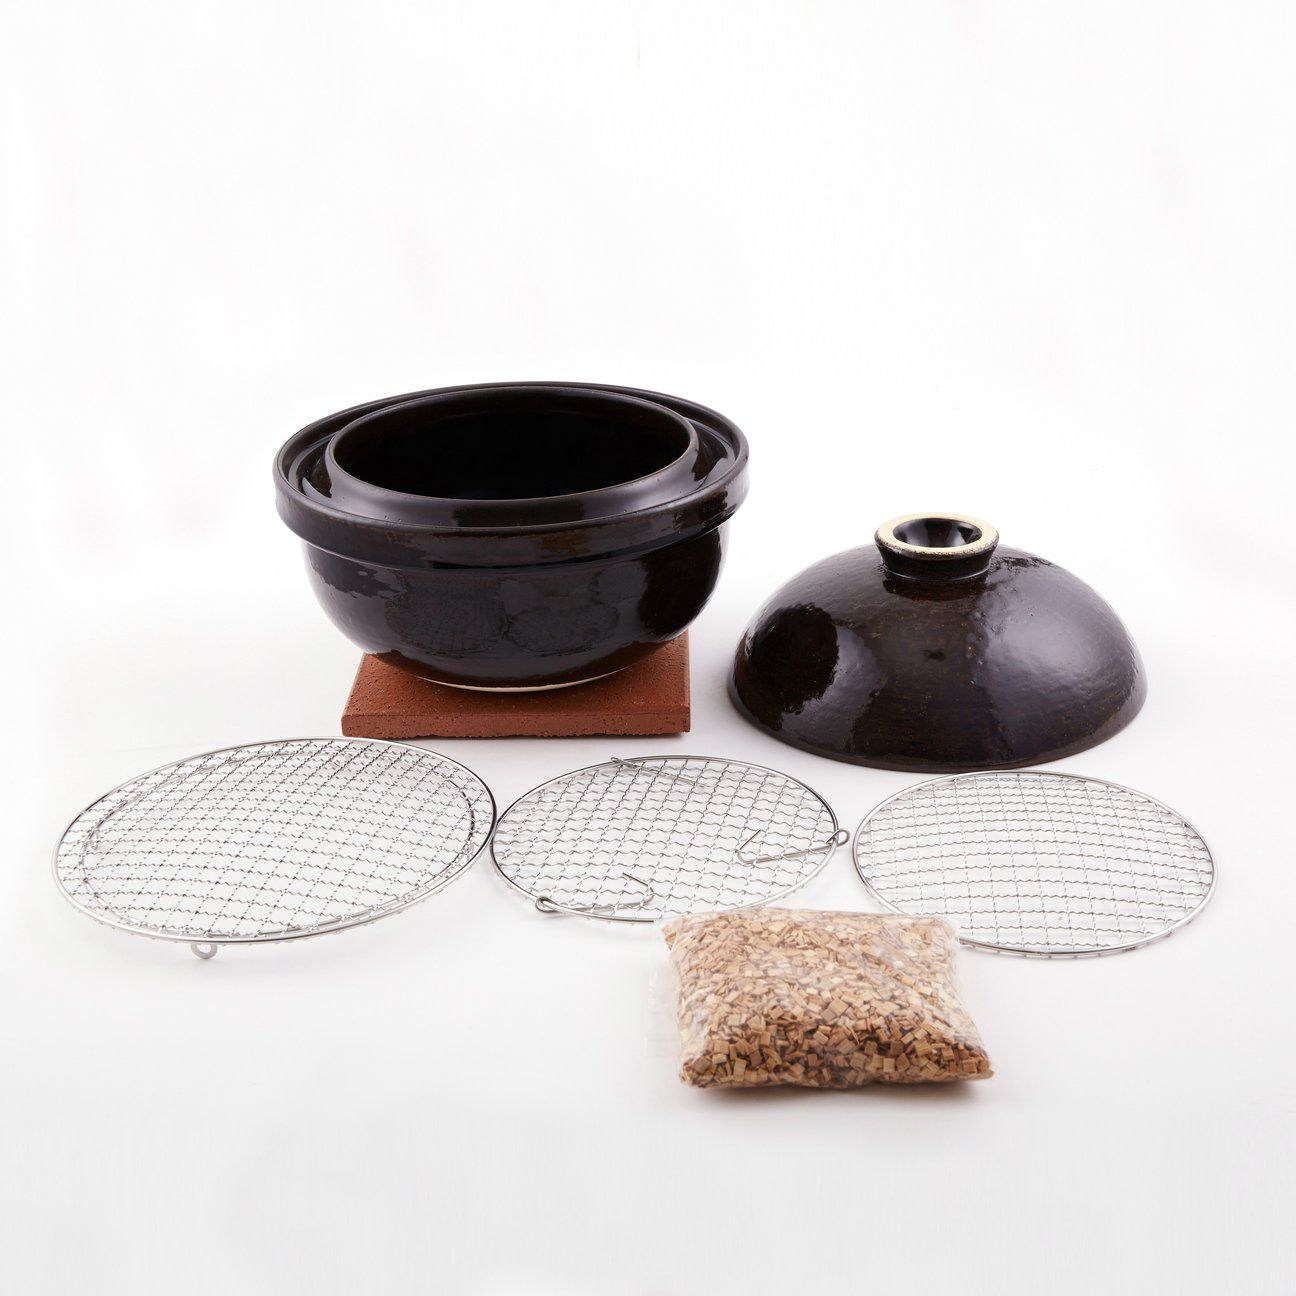 Ibushi Gin   Donabe, Smoked dishes, Open flame cooking